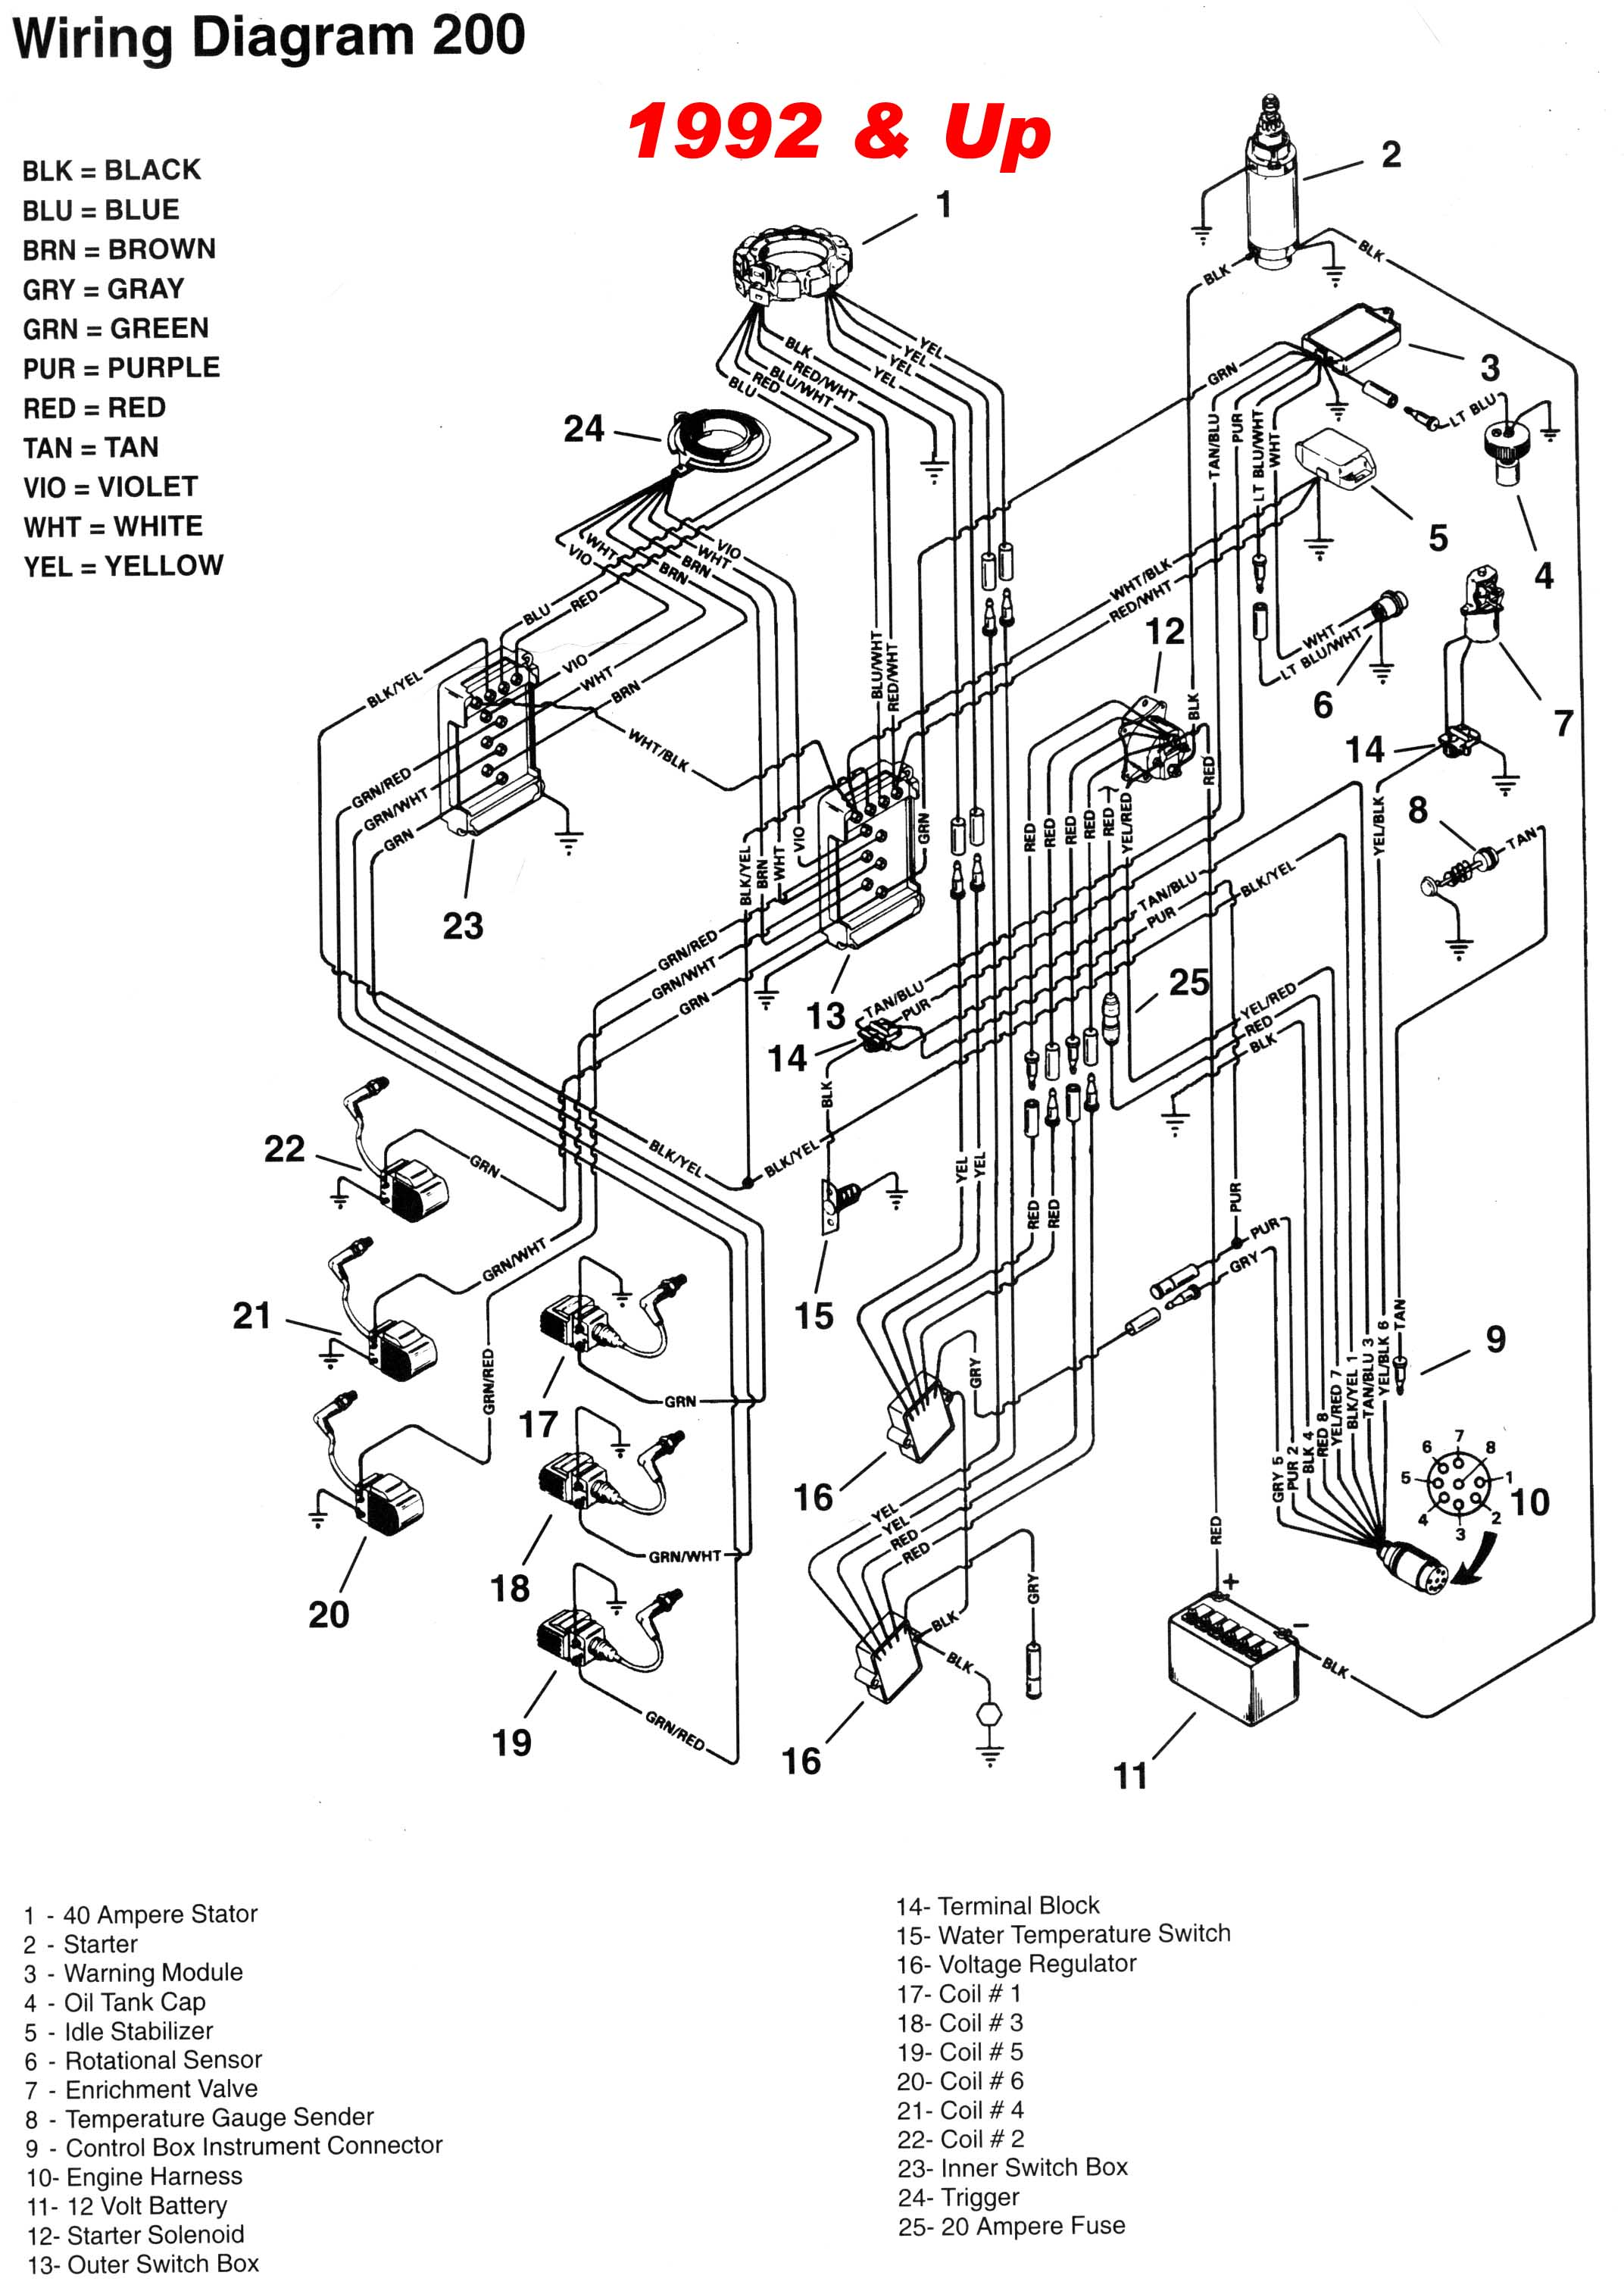 mercury_92up_200_wiring mercury outboard 2 5 and 3 0l v6 and gearcase faq mercury 9.9 4 stroke wiring diagram at panicattacktreatment.co